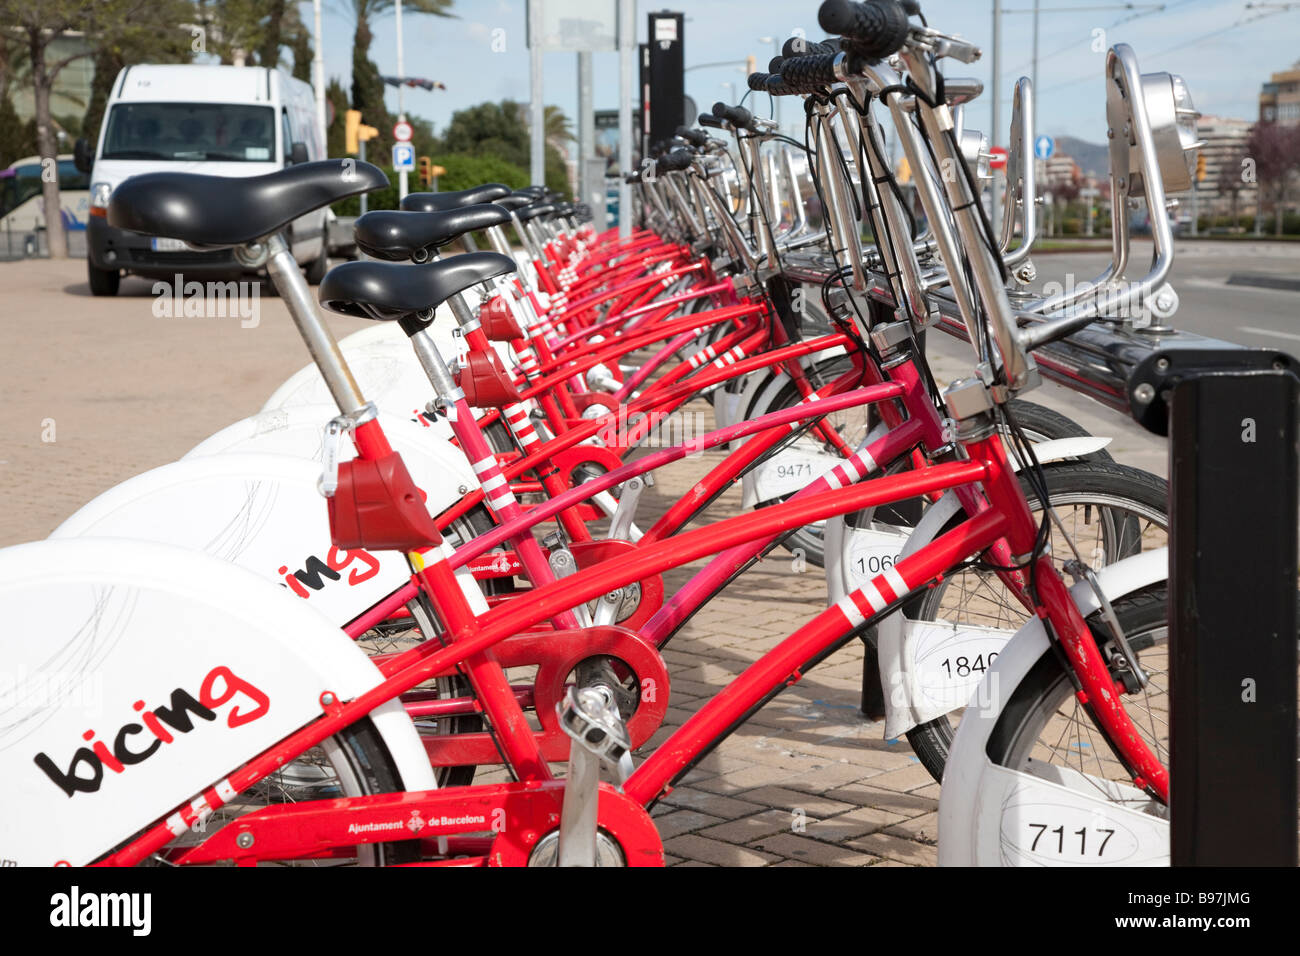 Bicing Bicycle Hire Station near Torre Agba Barcelona Spain - Stock Image